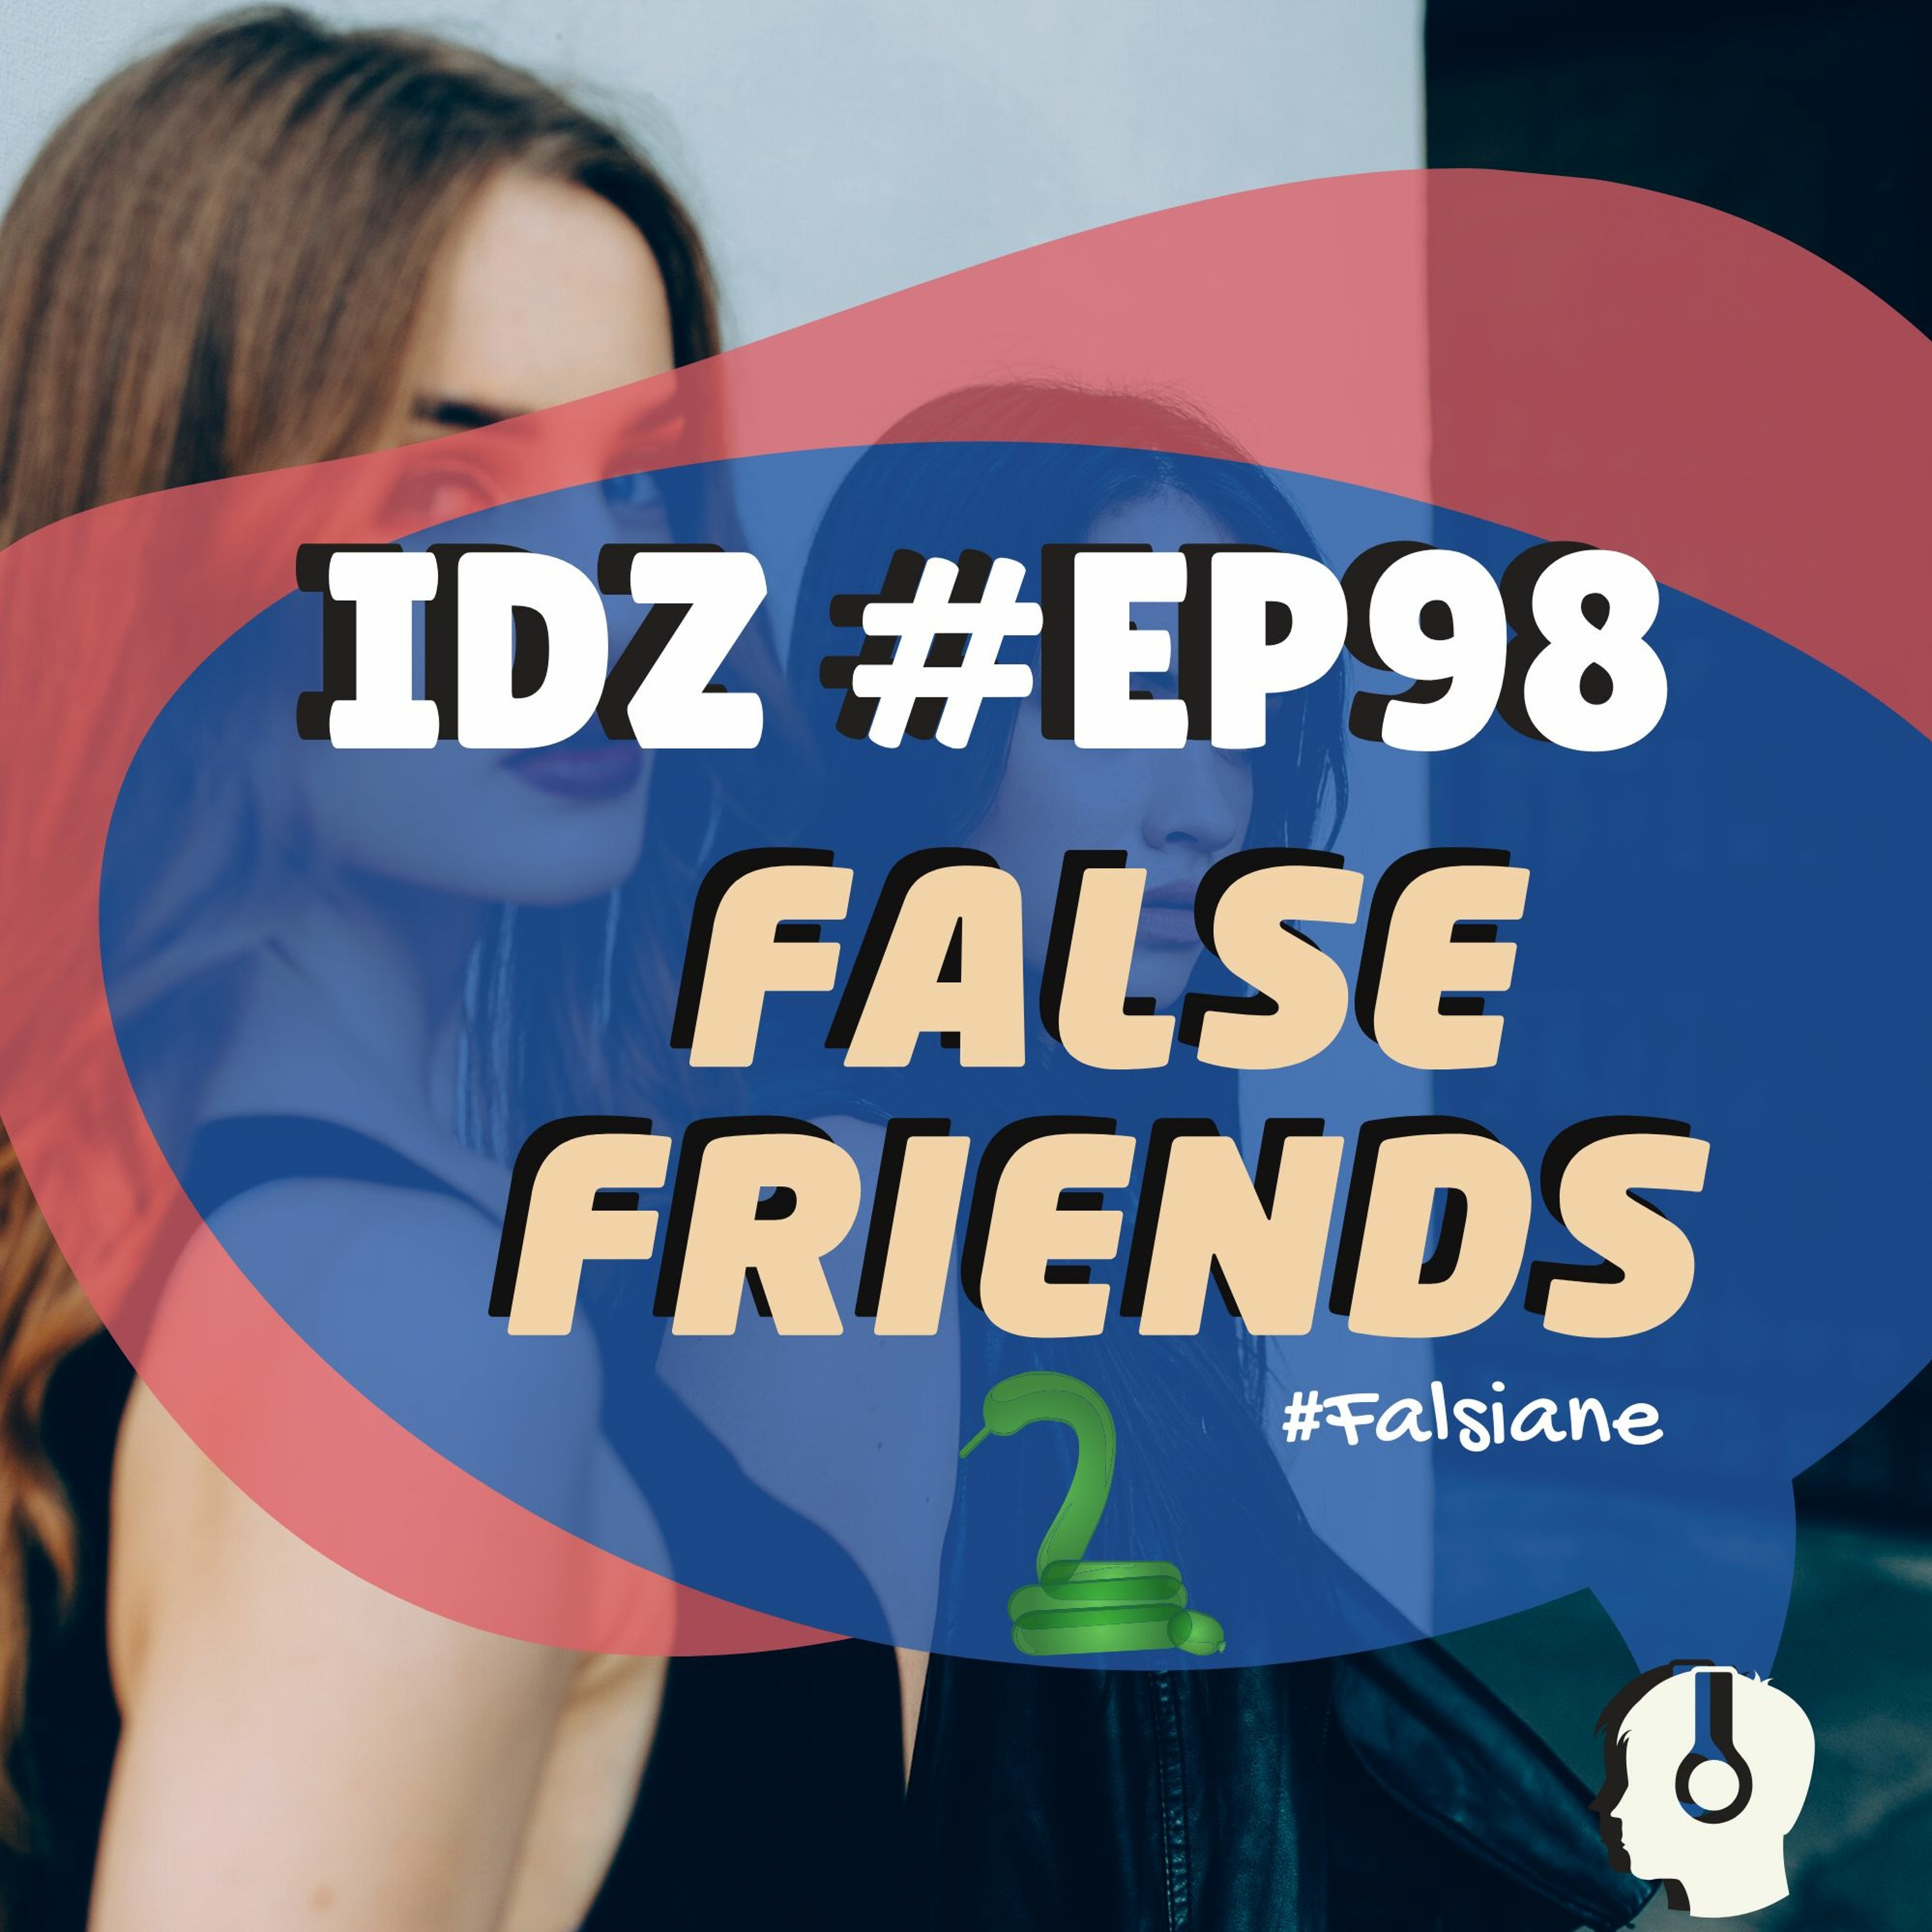 IDZ #098 - FALSE FRIENDS [Falsianes do Inglês] Falsos Cognatos